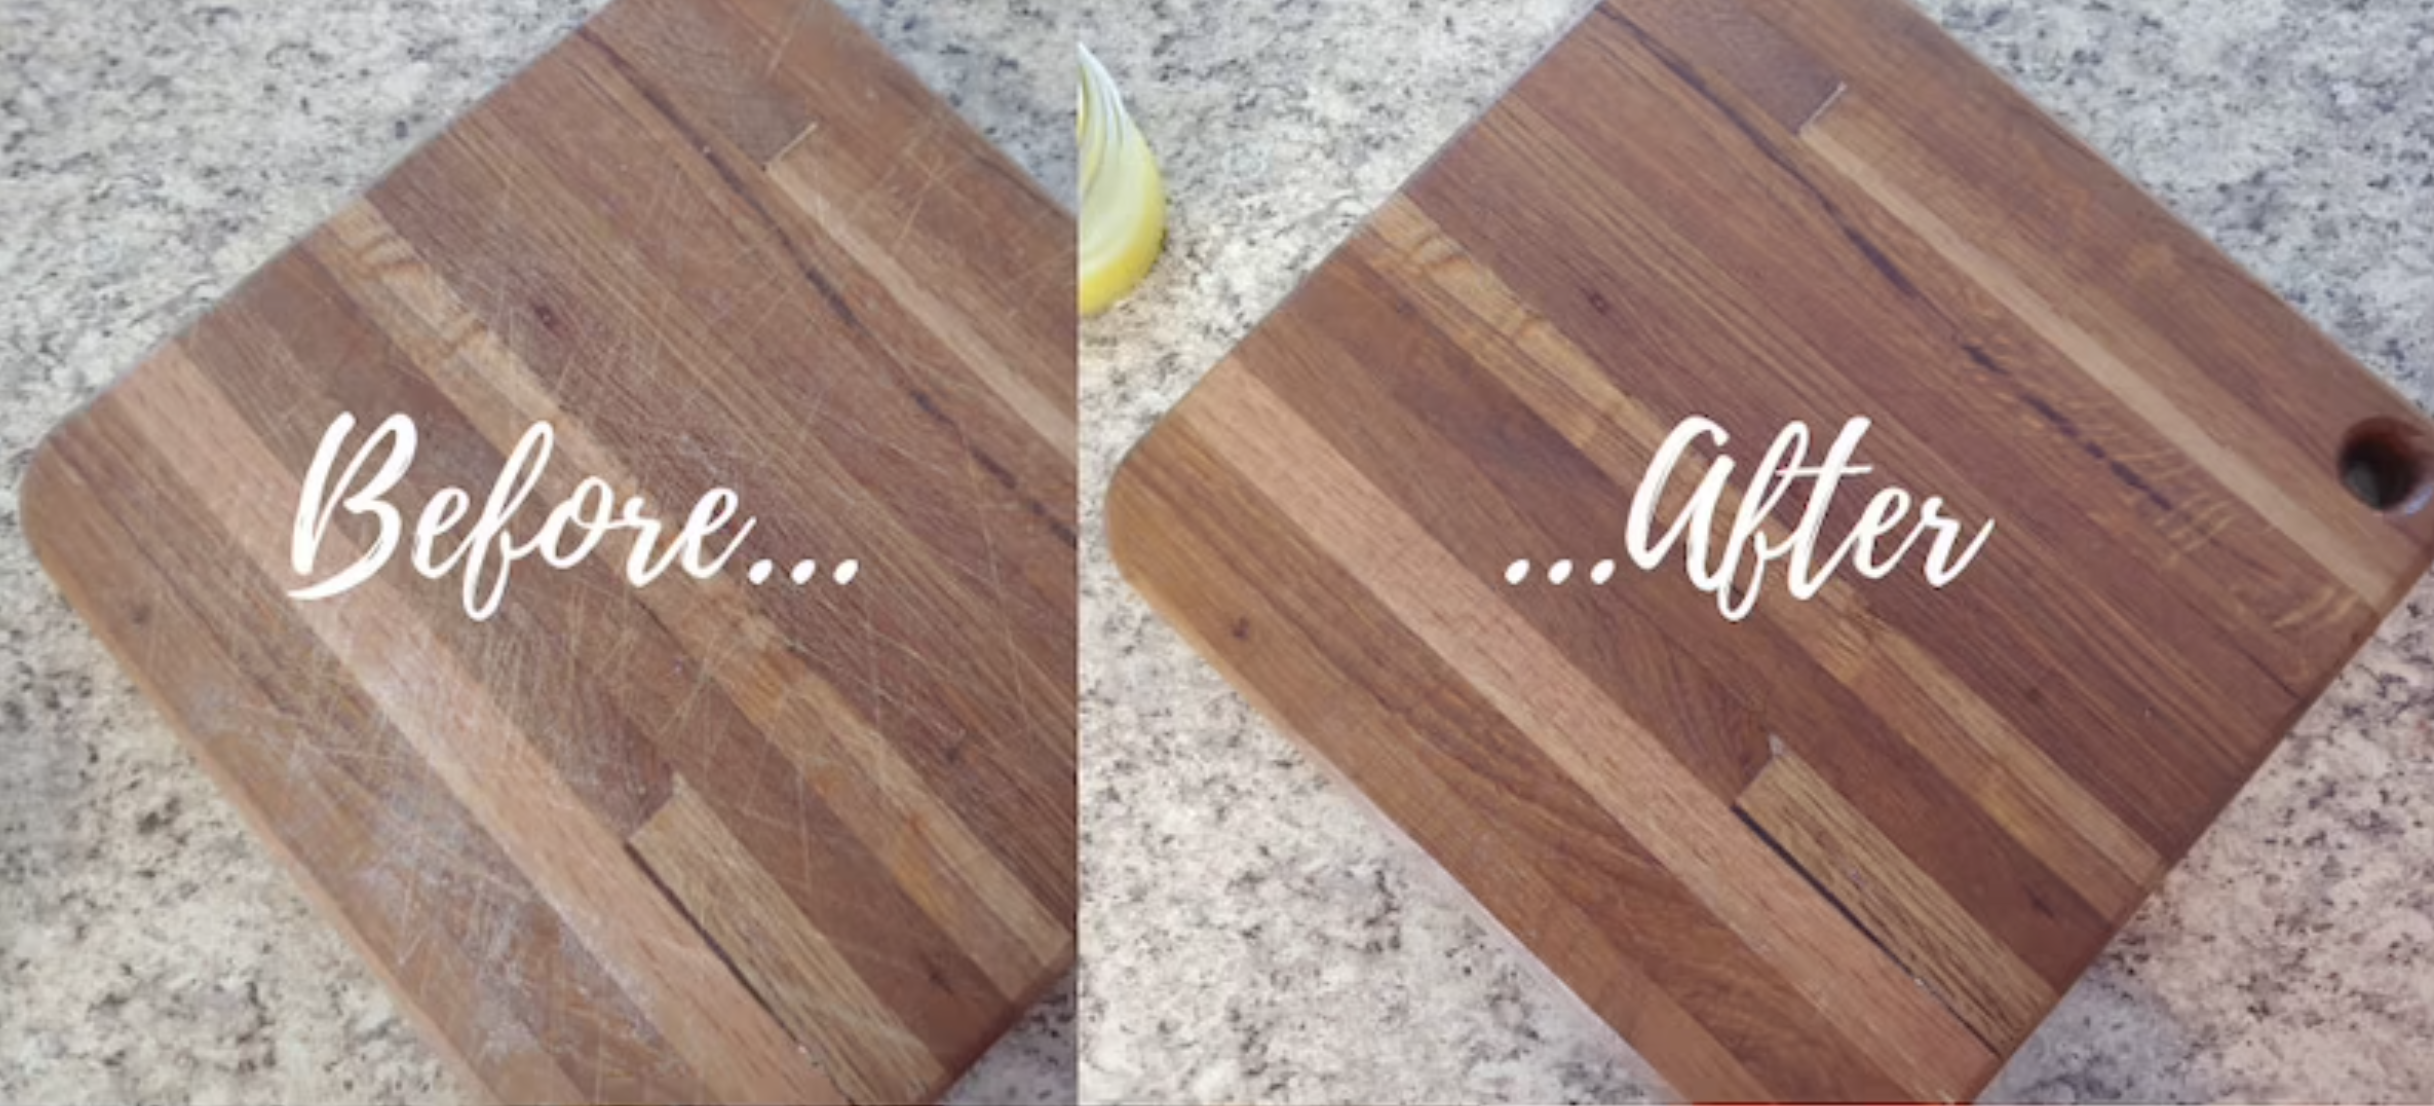 A before and after pic of a scuffed up cutting board with the scuffs gone